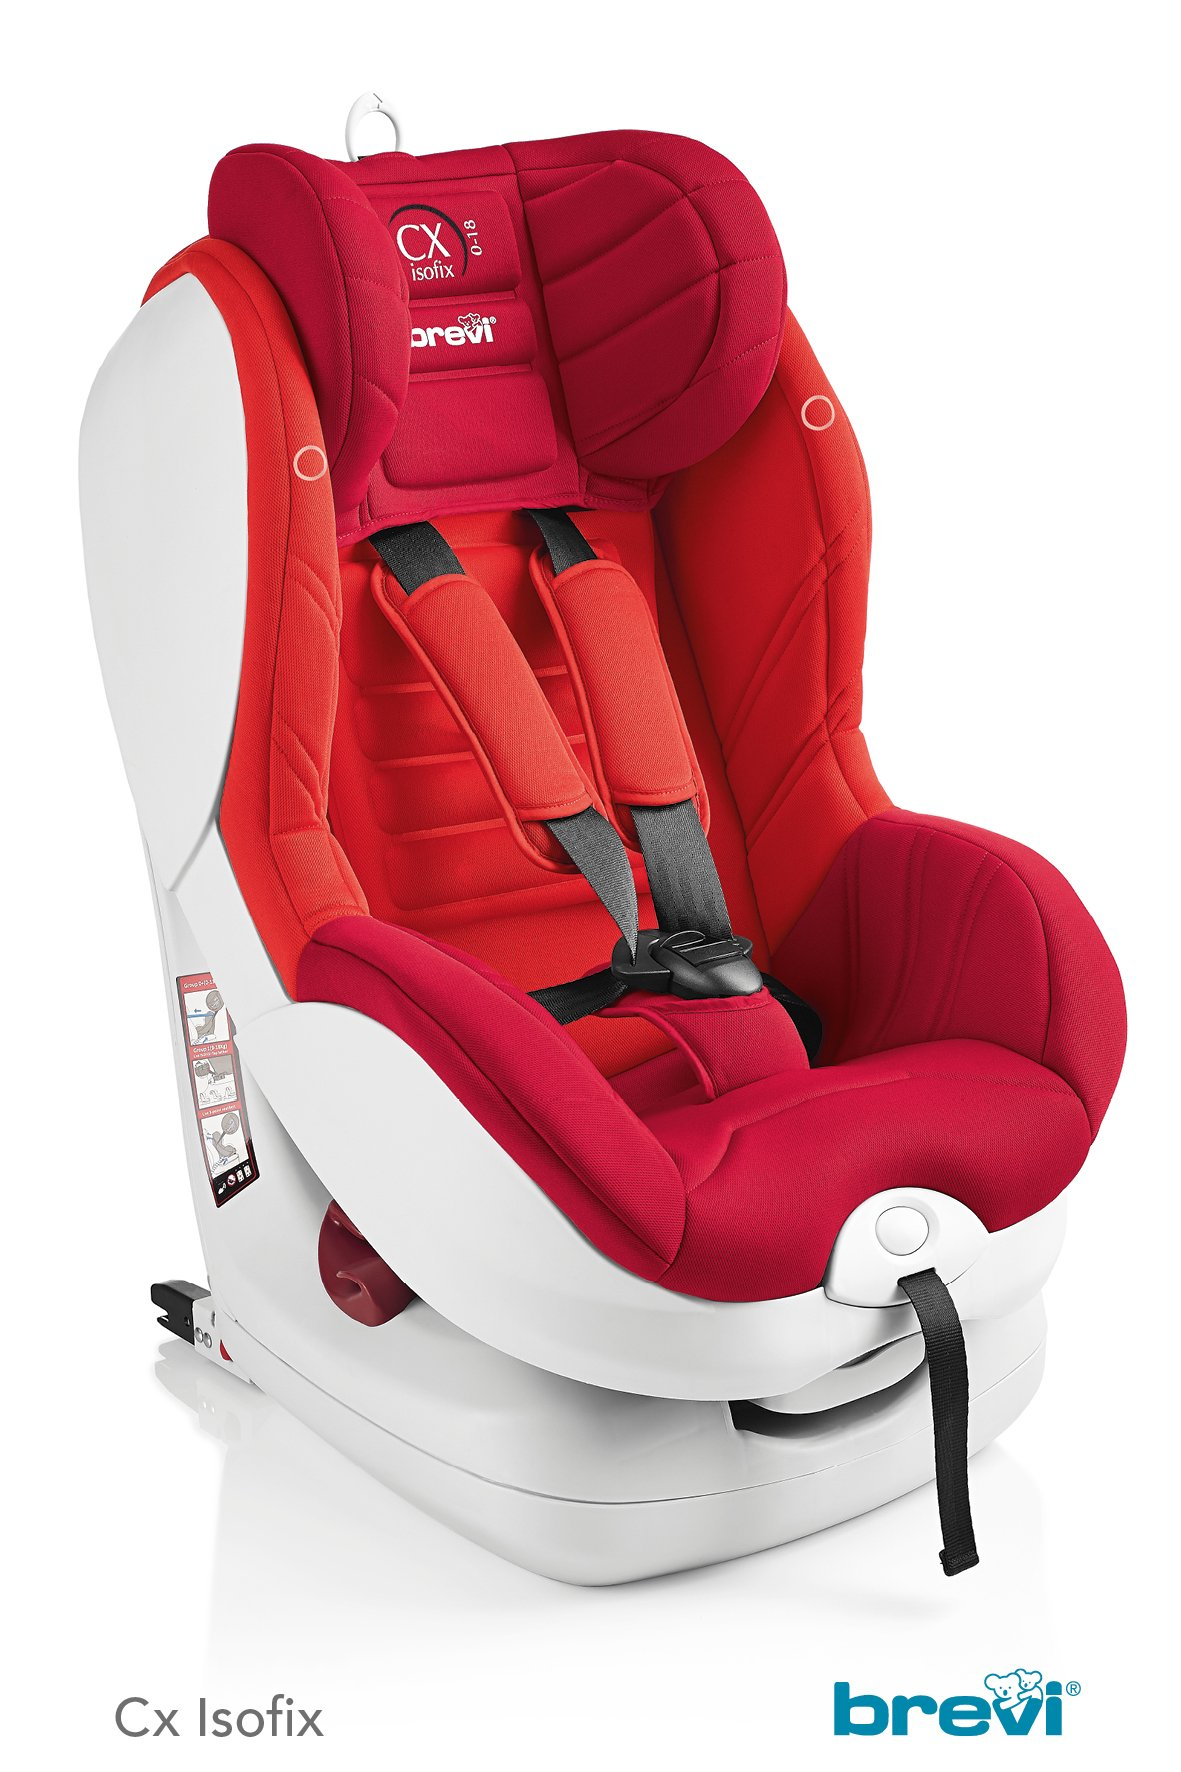 Brevi Child Car Seat Cx Isofix Tt 2018 Red Buy At